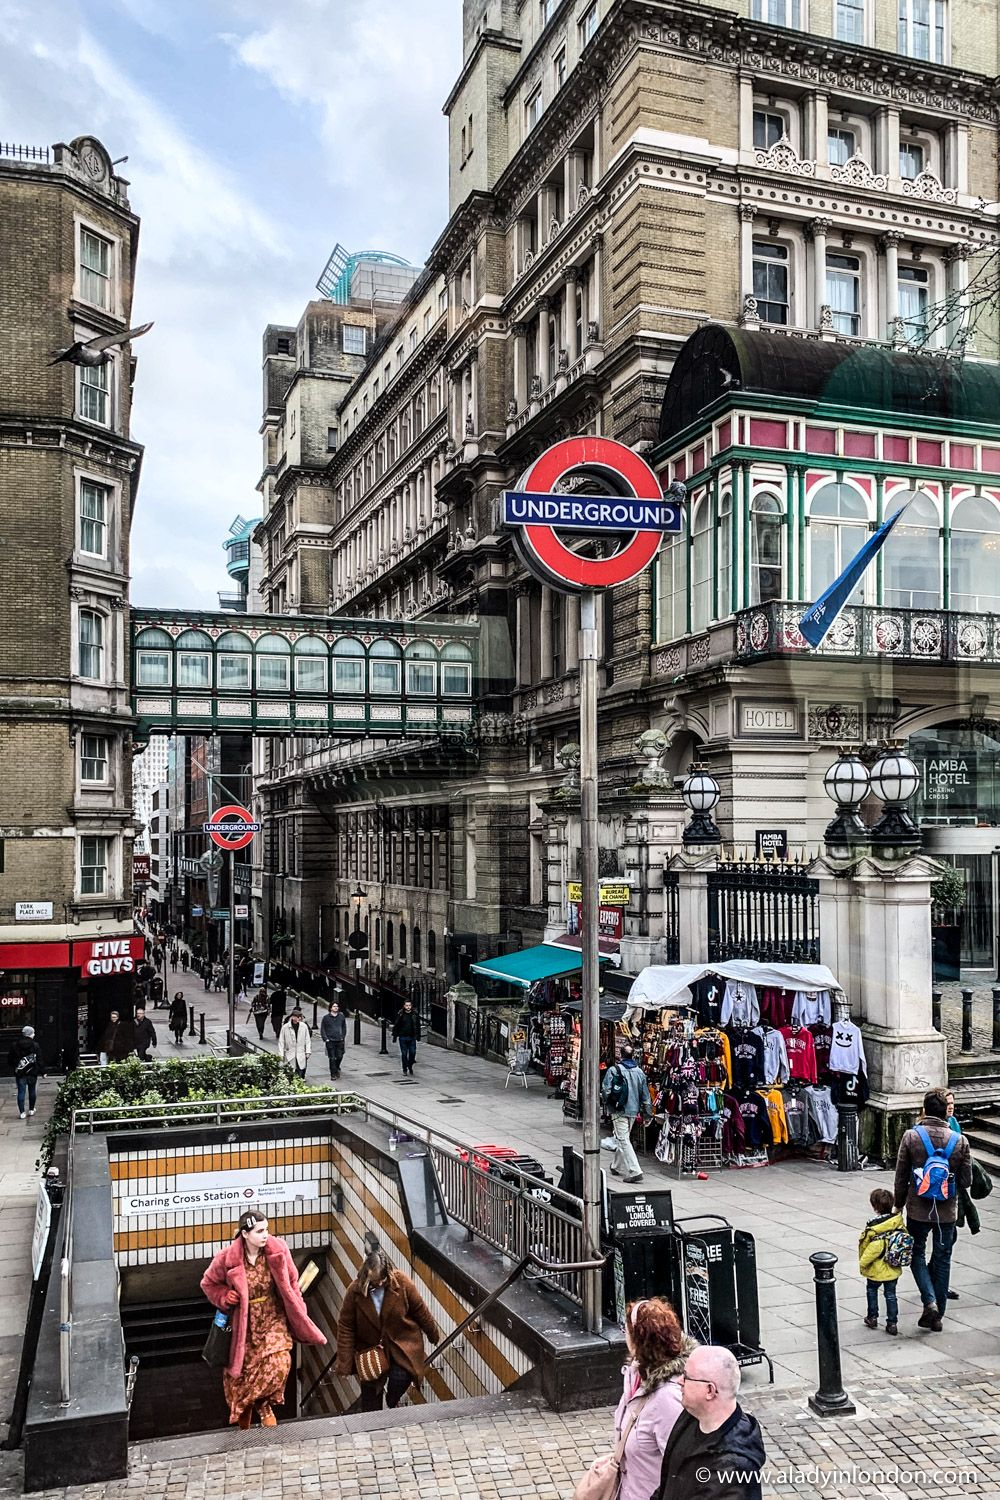 These signs for London Underground stations are iconic. Charing Cross, London has great historic architecture around it. #london #underground #station #trainstation